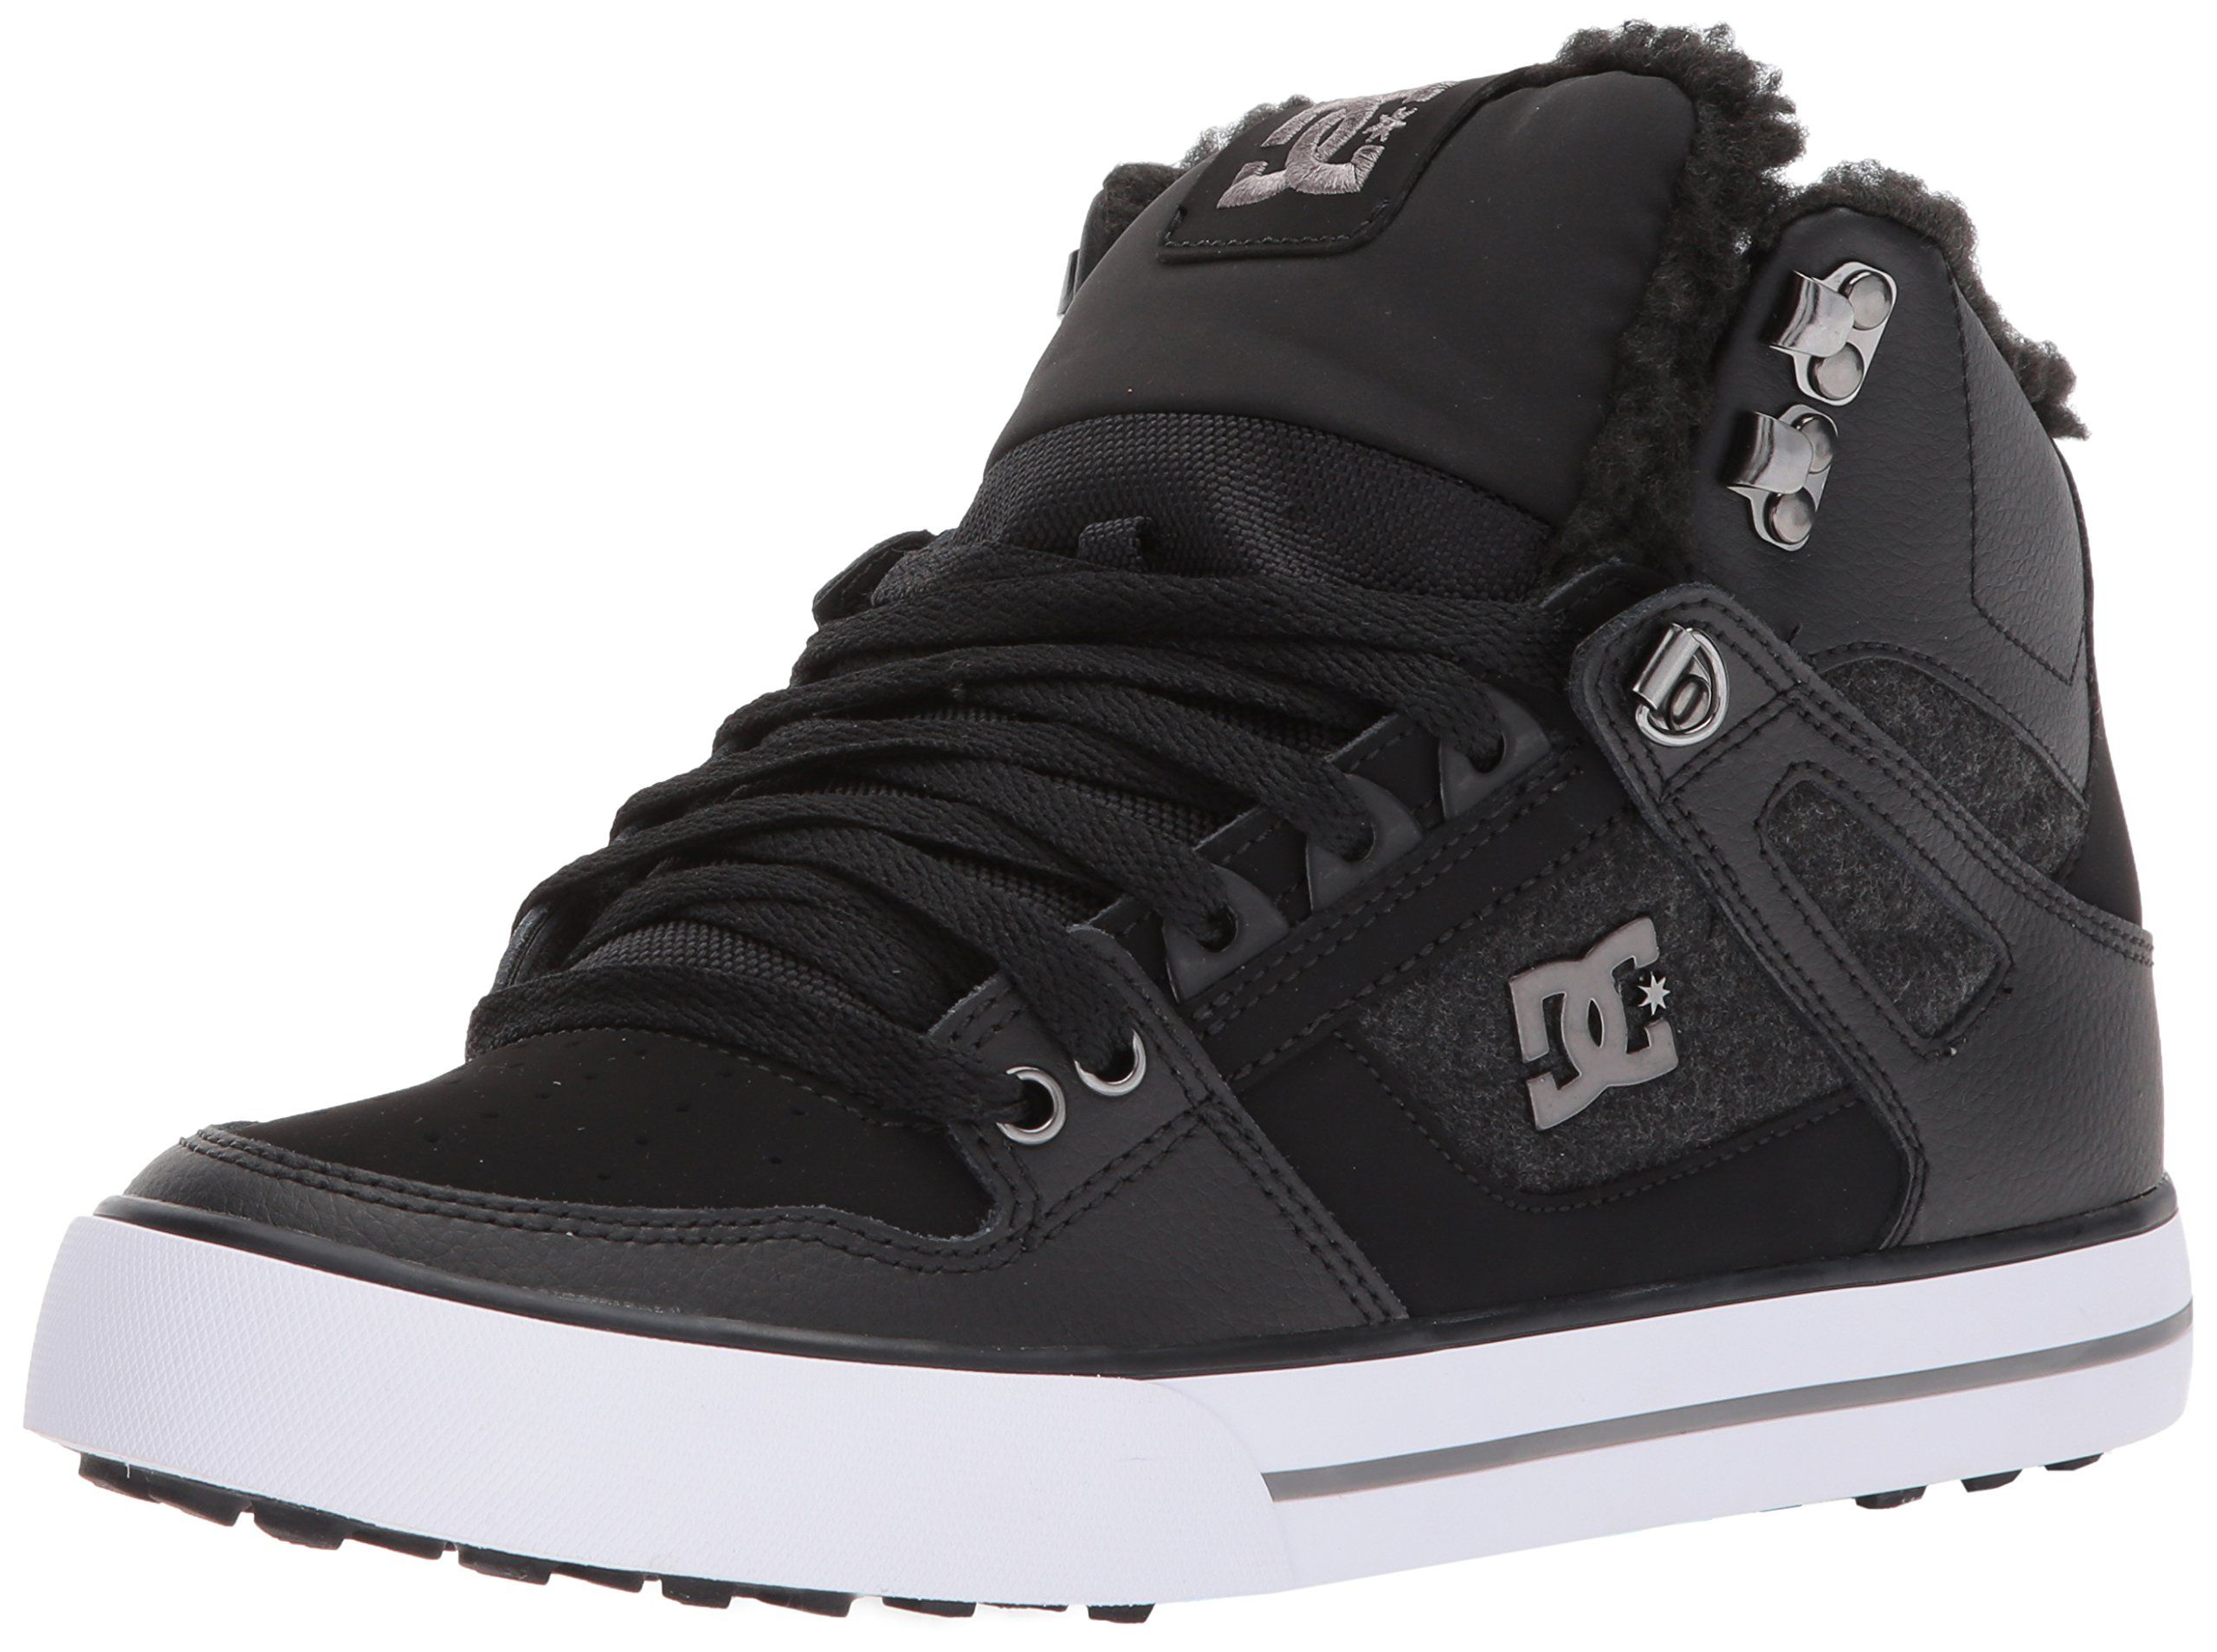 Dc Womens Spartan High Wc Wnt Skate Shoe Black Armor 10 D D Us To View Further For This Item Visit The Image Link This Is Skate Shoes Shoes Black Shoes